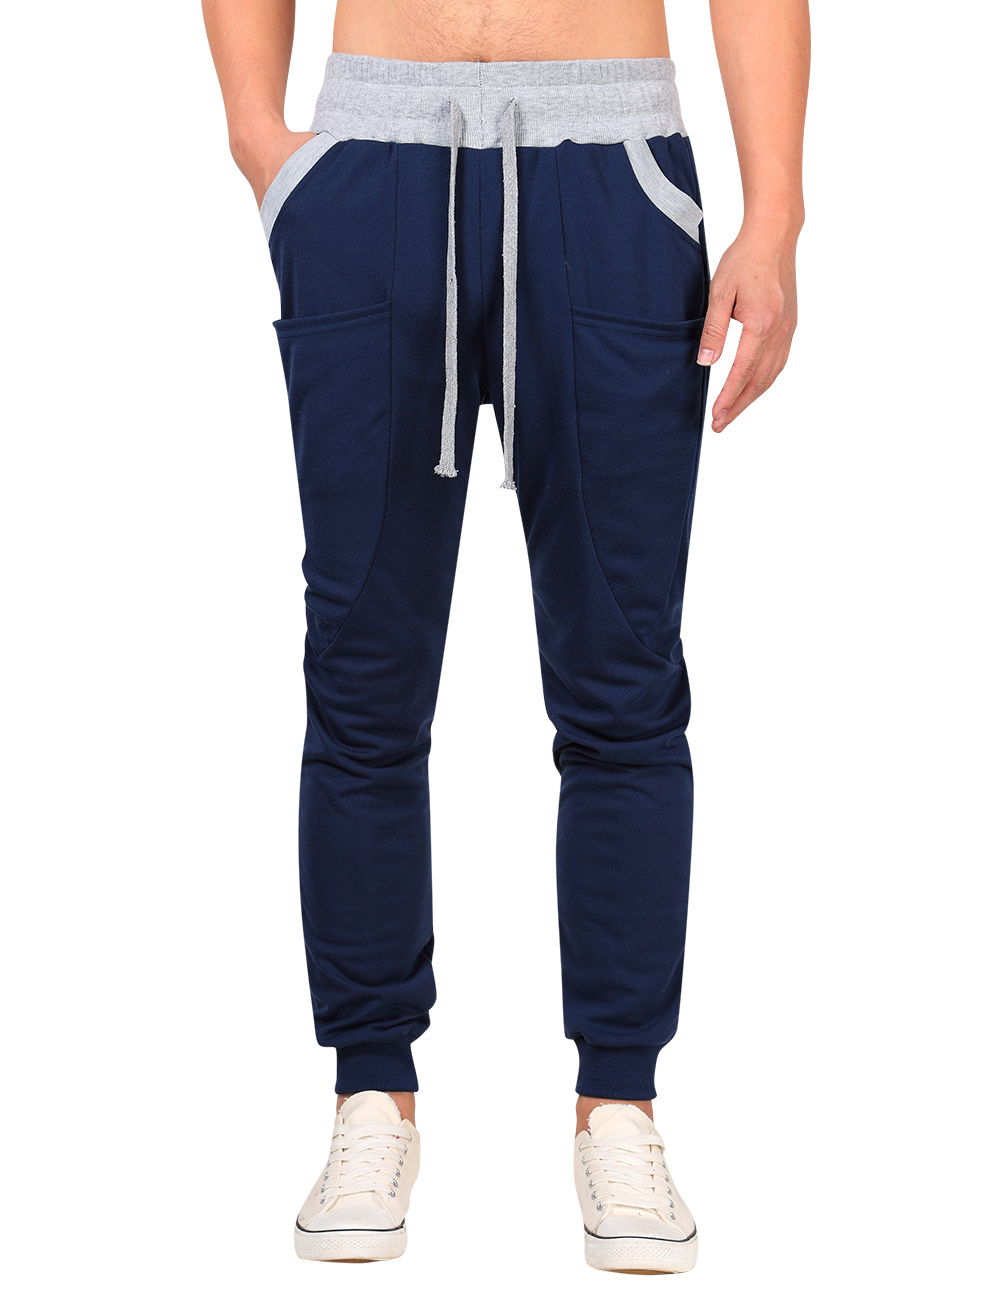 Yong Horse Men's Casual Loose Sweatpants